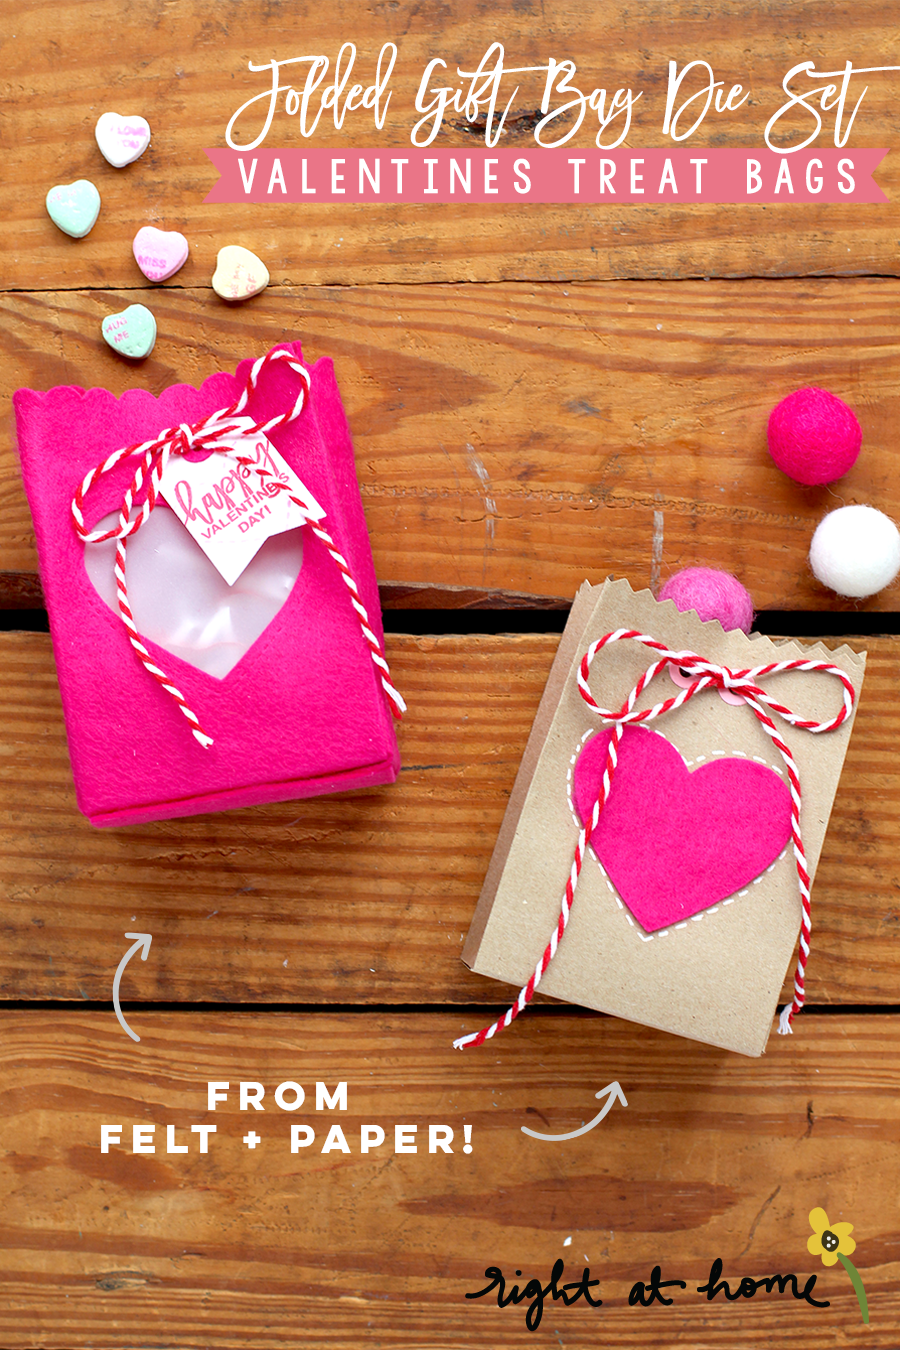 Day #2: Folded Gift Bag Die Set Felt + Paper Valentines Treat Bags // rightathomeshop.com/blog